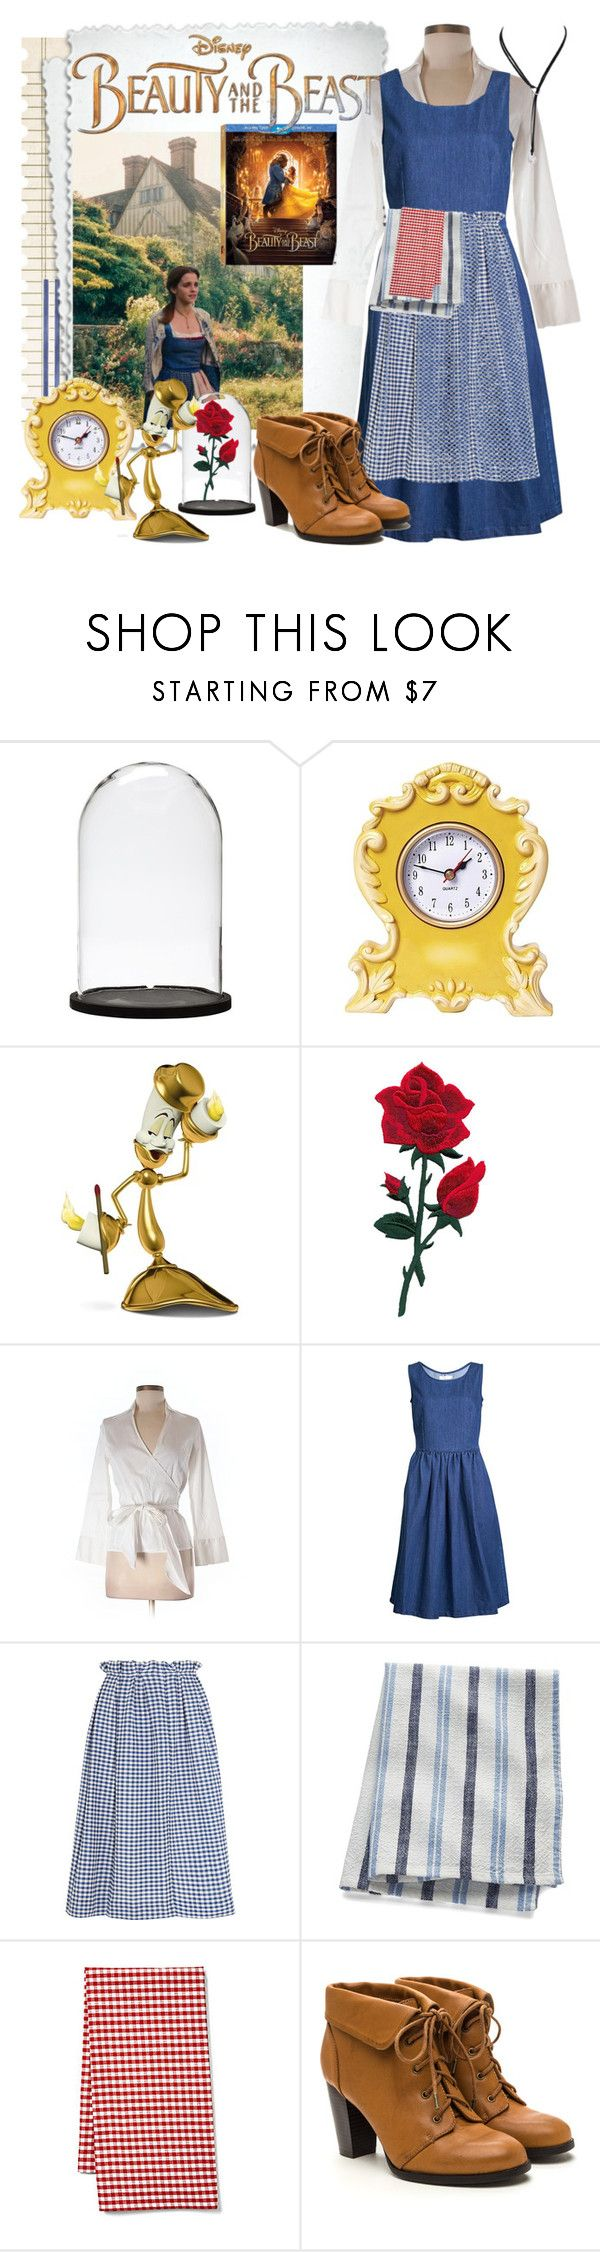 Beauty and the beast by pinkice ❤ liked on polyvore featuring disney emma